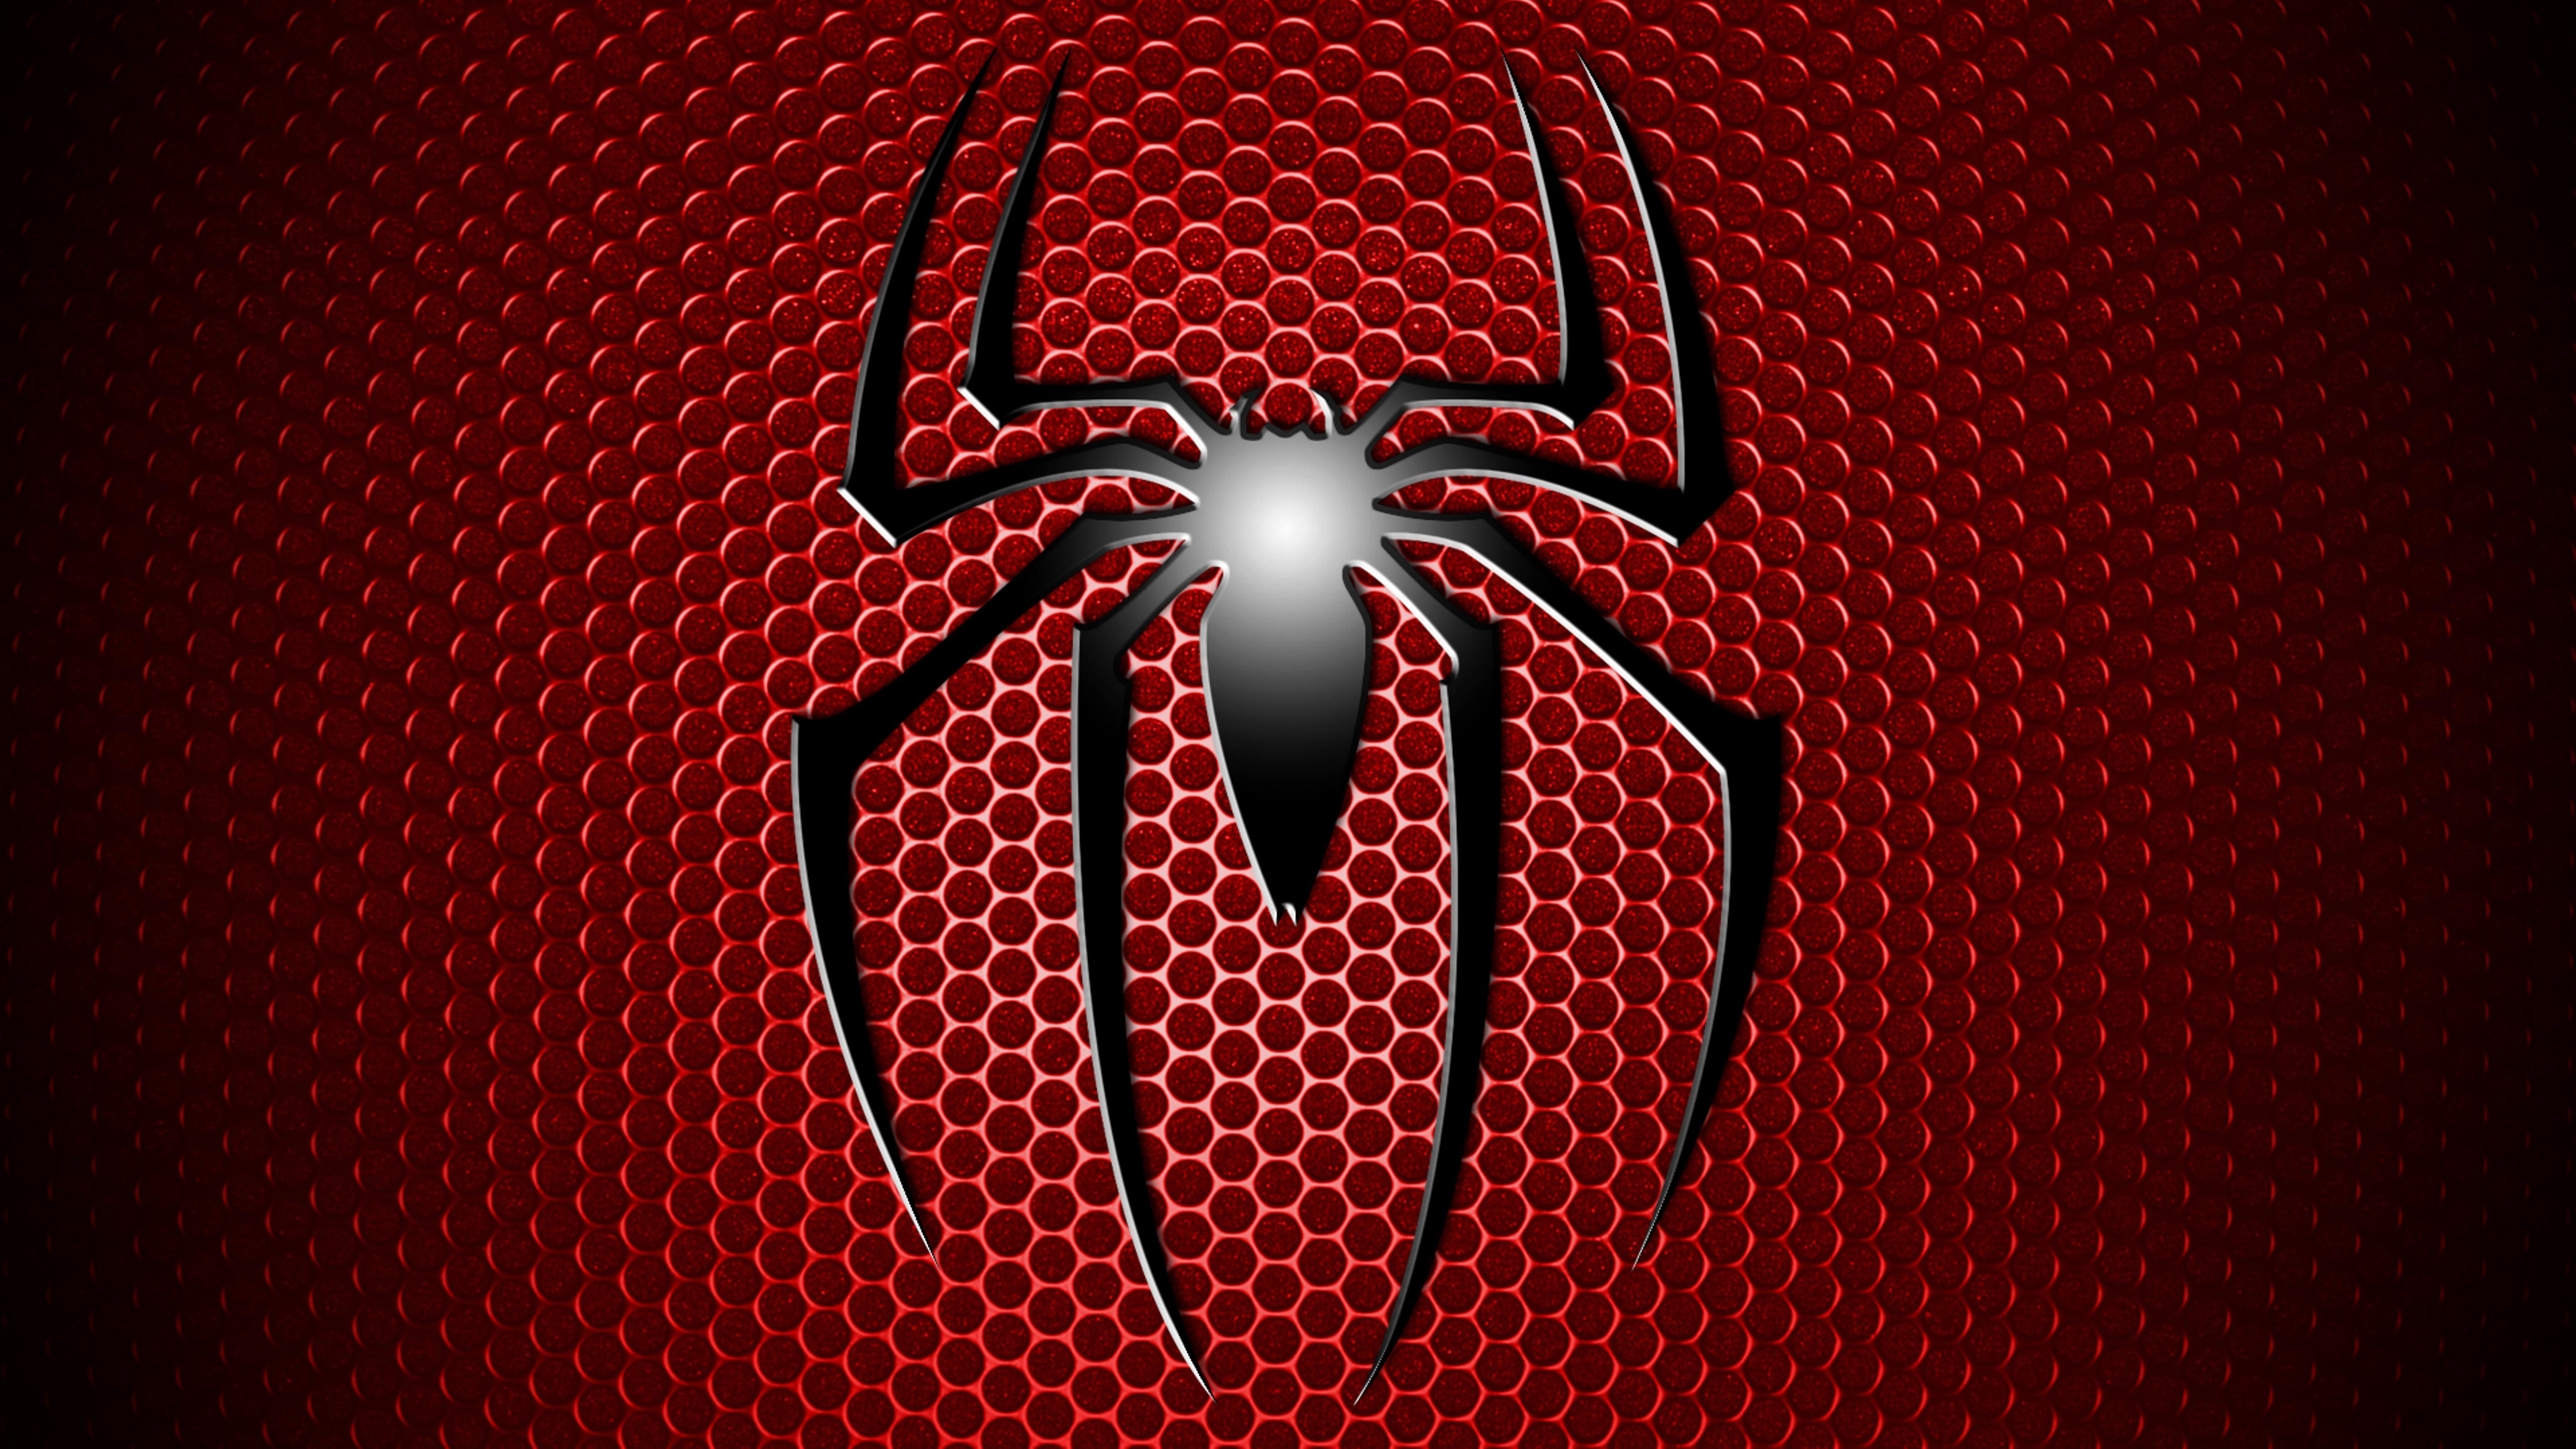 Spiderman Logo Wallpaper Download 5120x2880